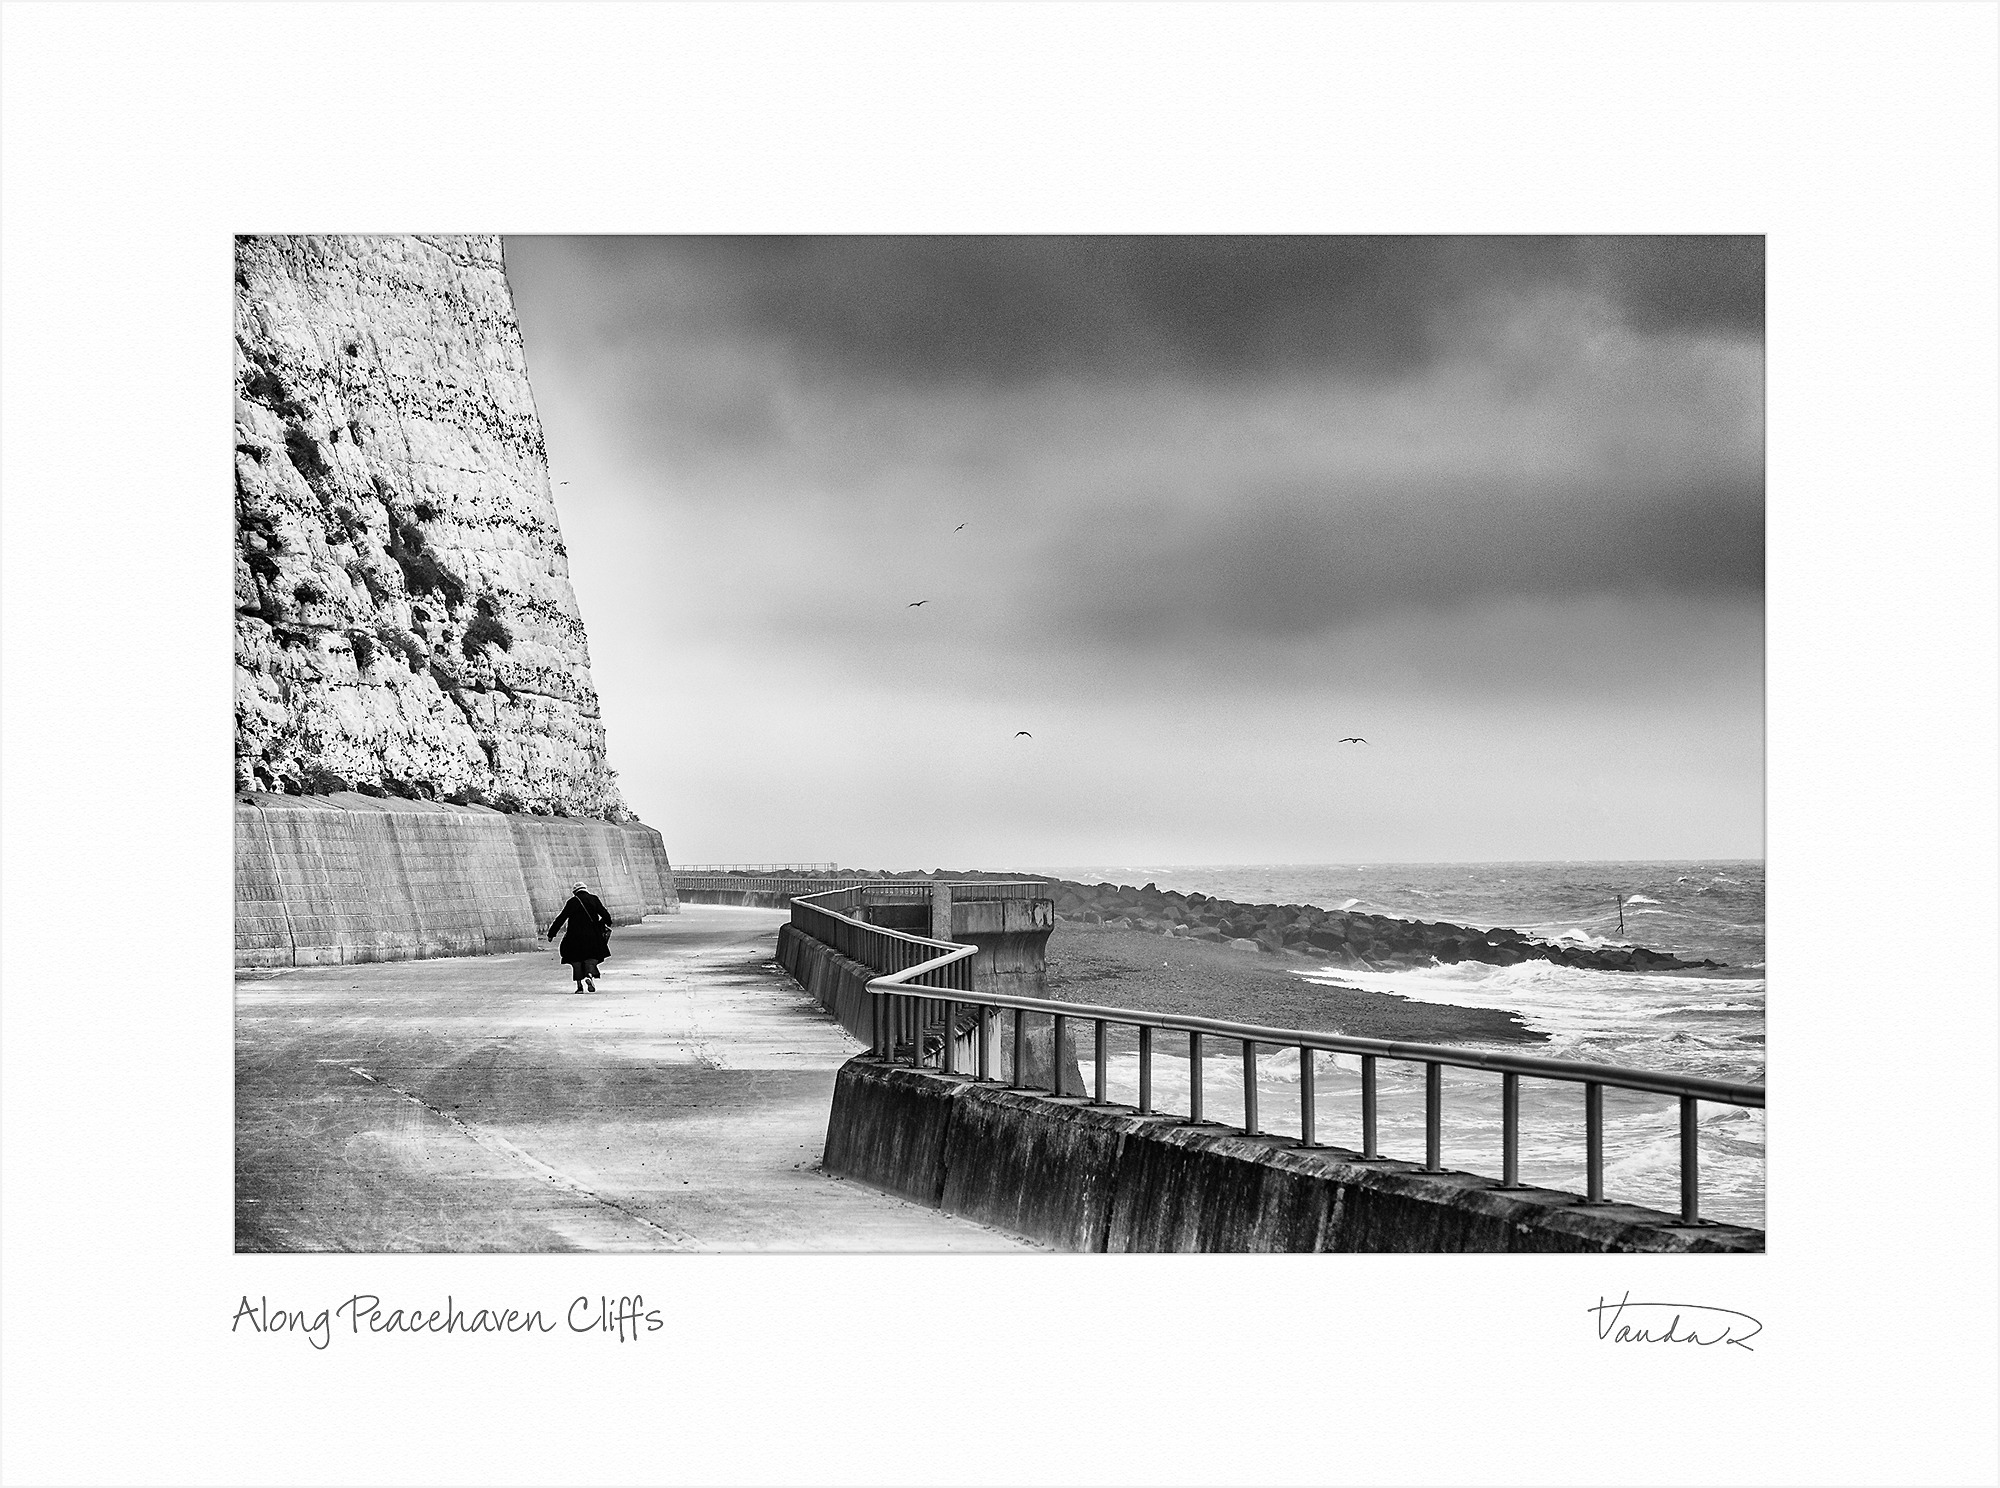 Along Peacehaven Cliffs